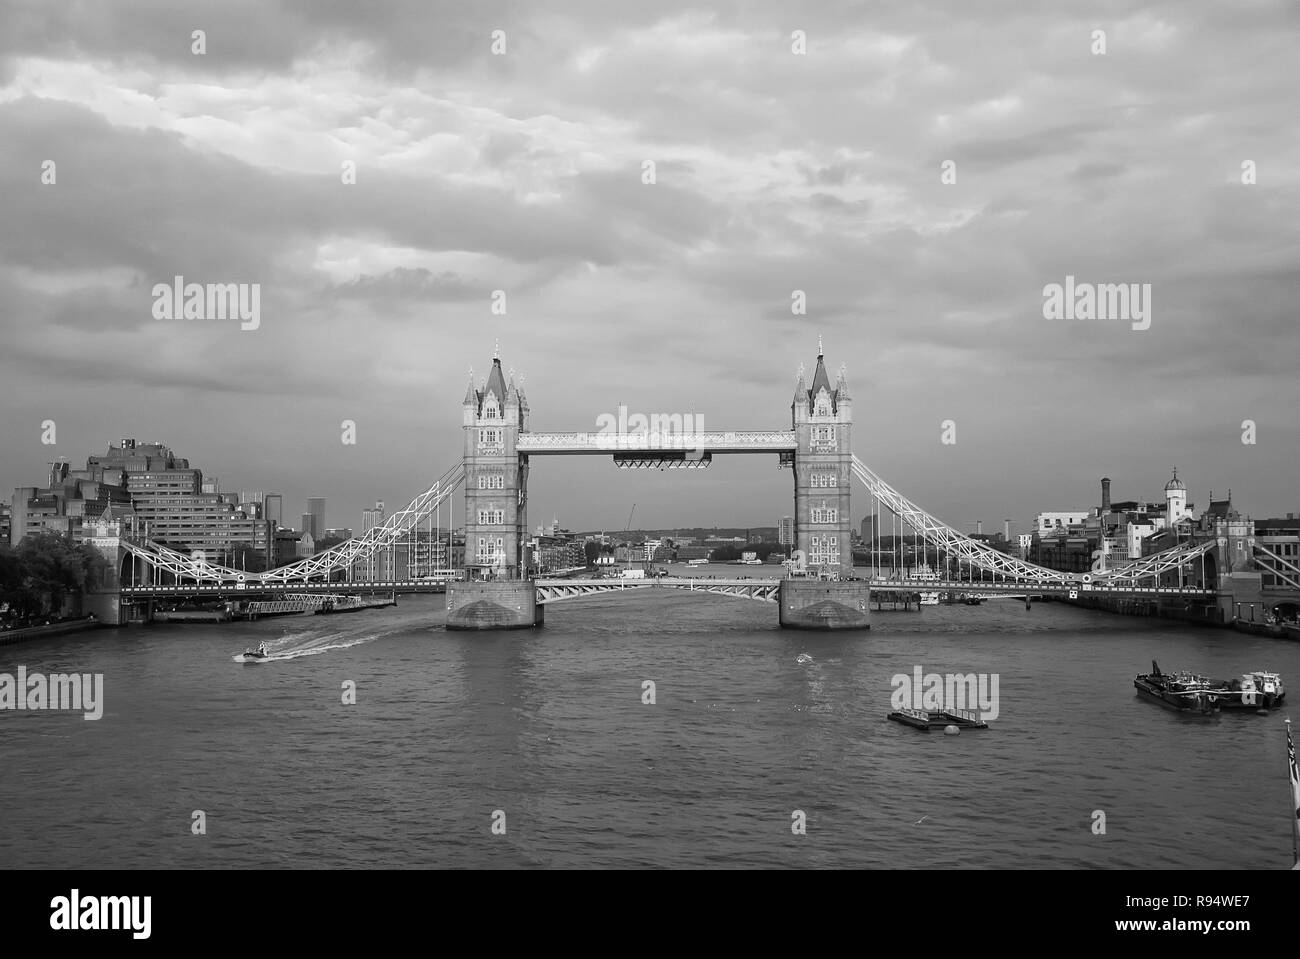 Tower bridge in London, United Kingdom. Bridge over Thames river on cloudy sky. Buildings on river banks with nice architecture. Structure and design. Wanderlust and vacation concept. - Stock Image